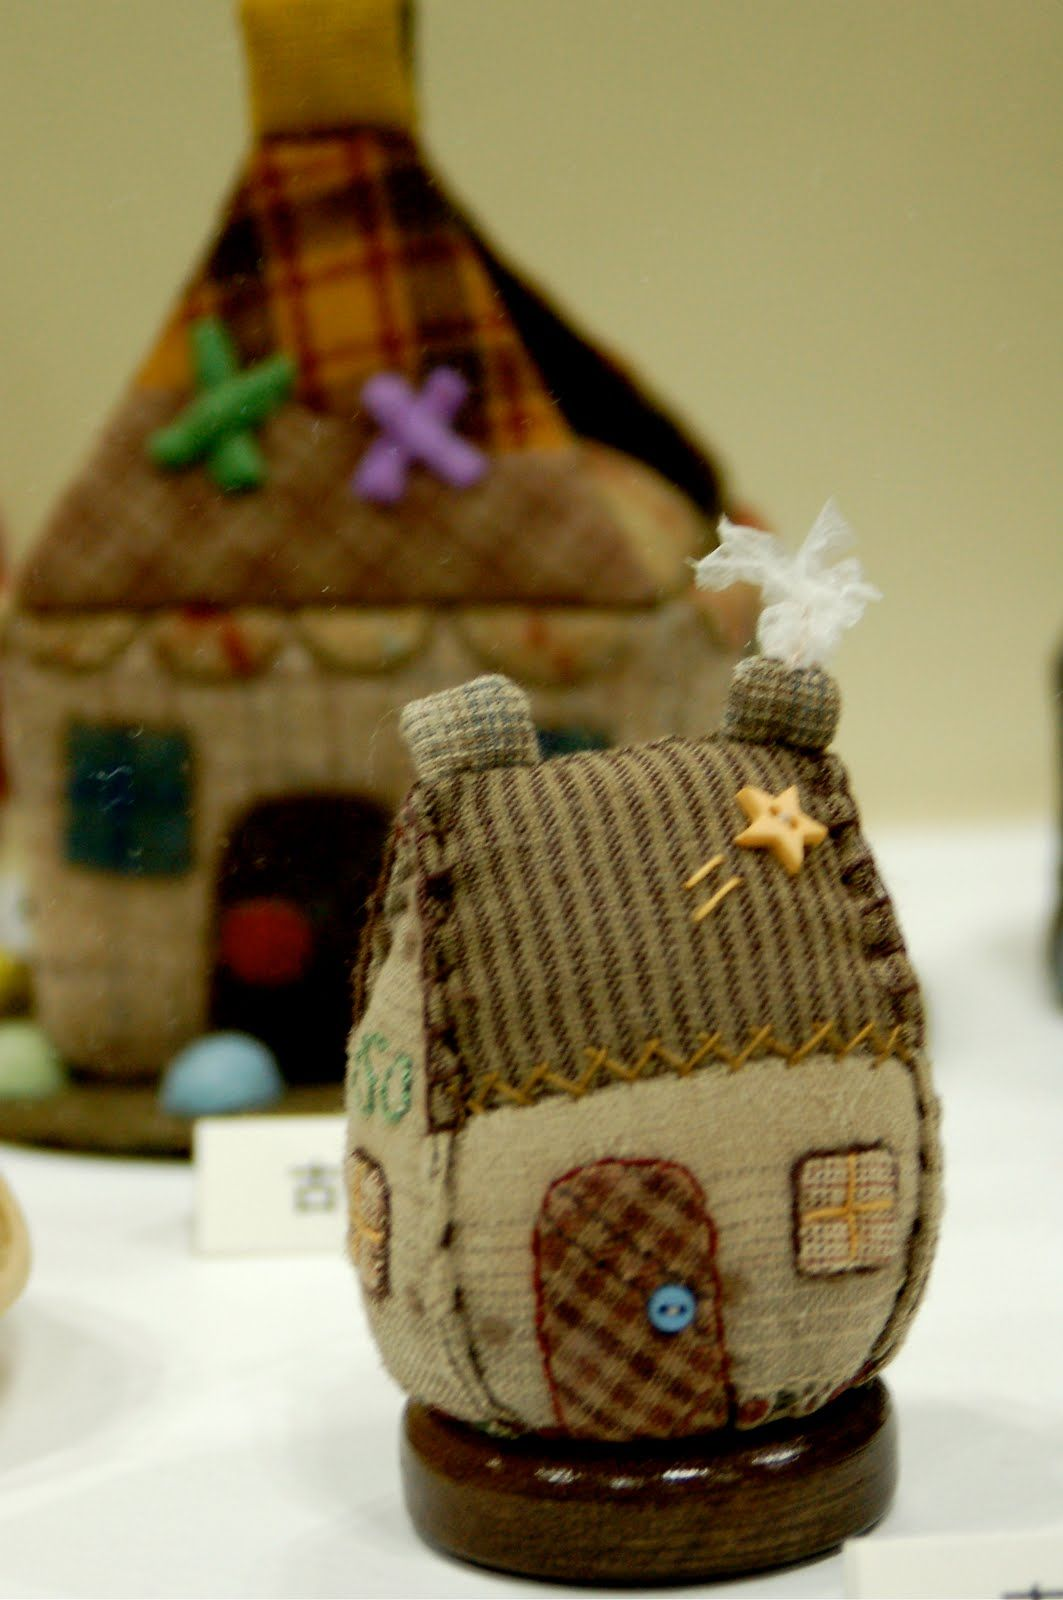 little house pincushion photographed at 2009 IQF Yokohama on Cleary Kazoku blog - artist not named?